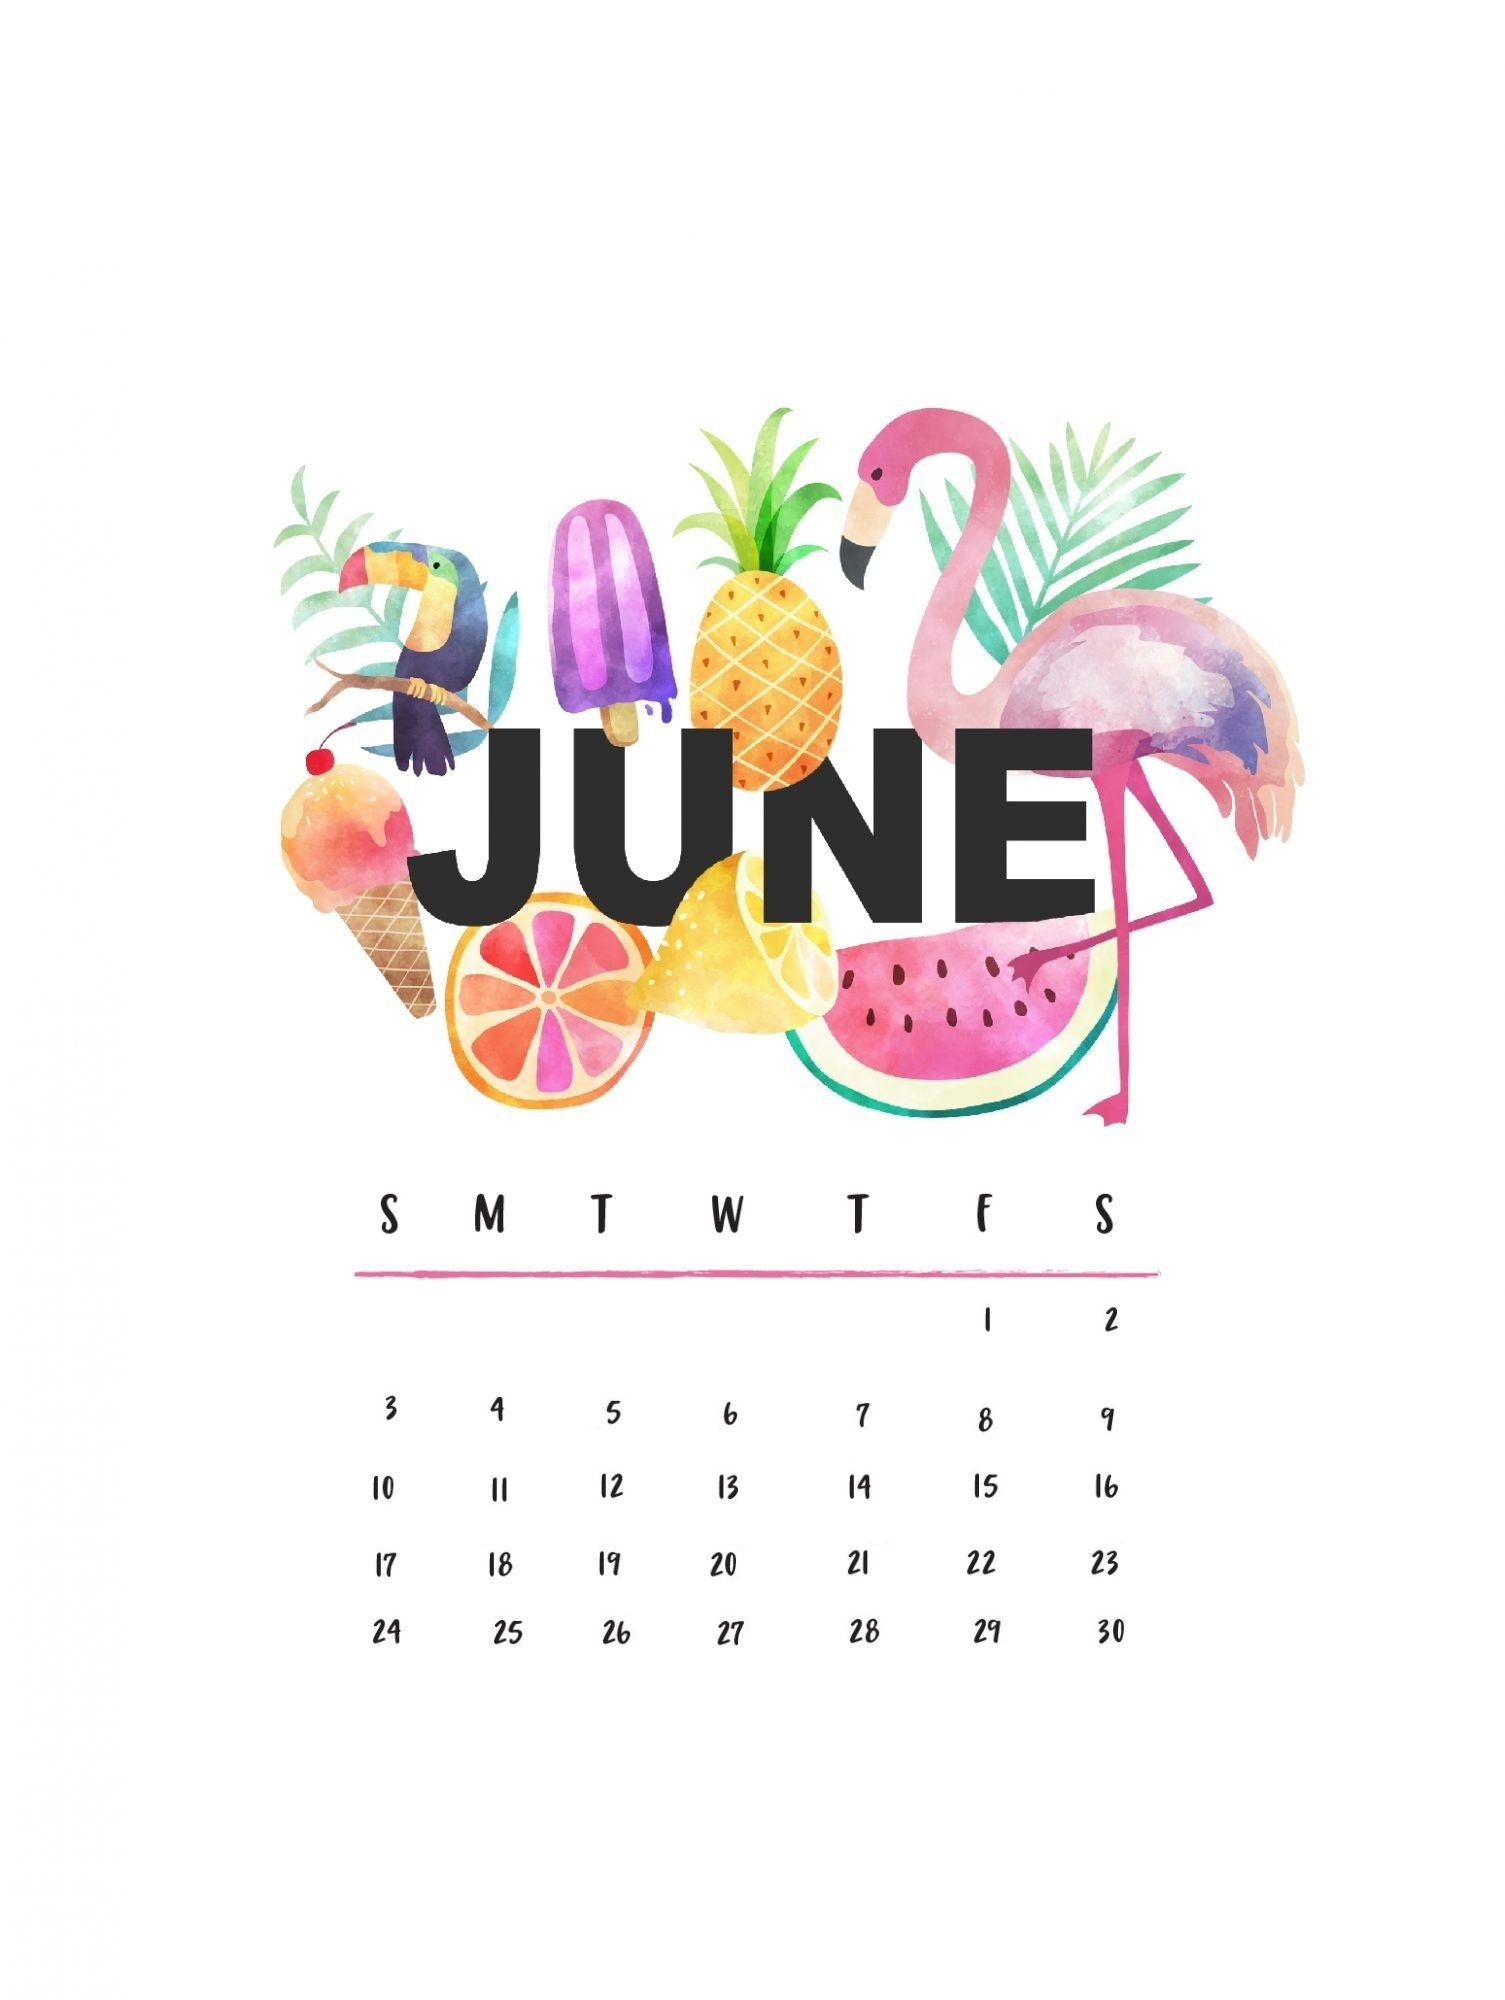 beautiful june 2019 iphone calendar wallpapers::June 2019 iPhone Calendar Wallpaper